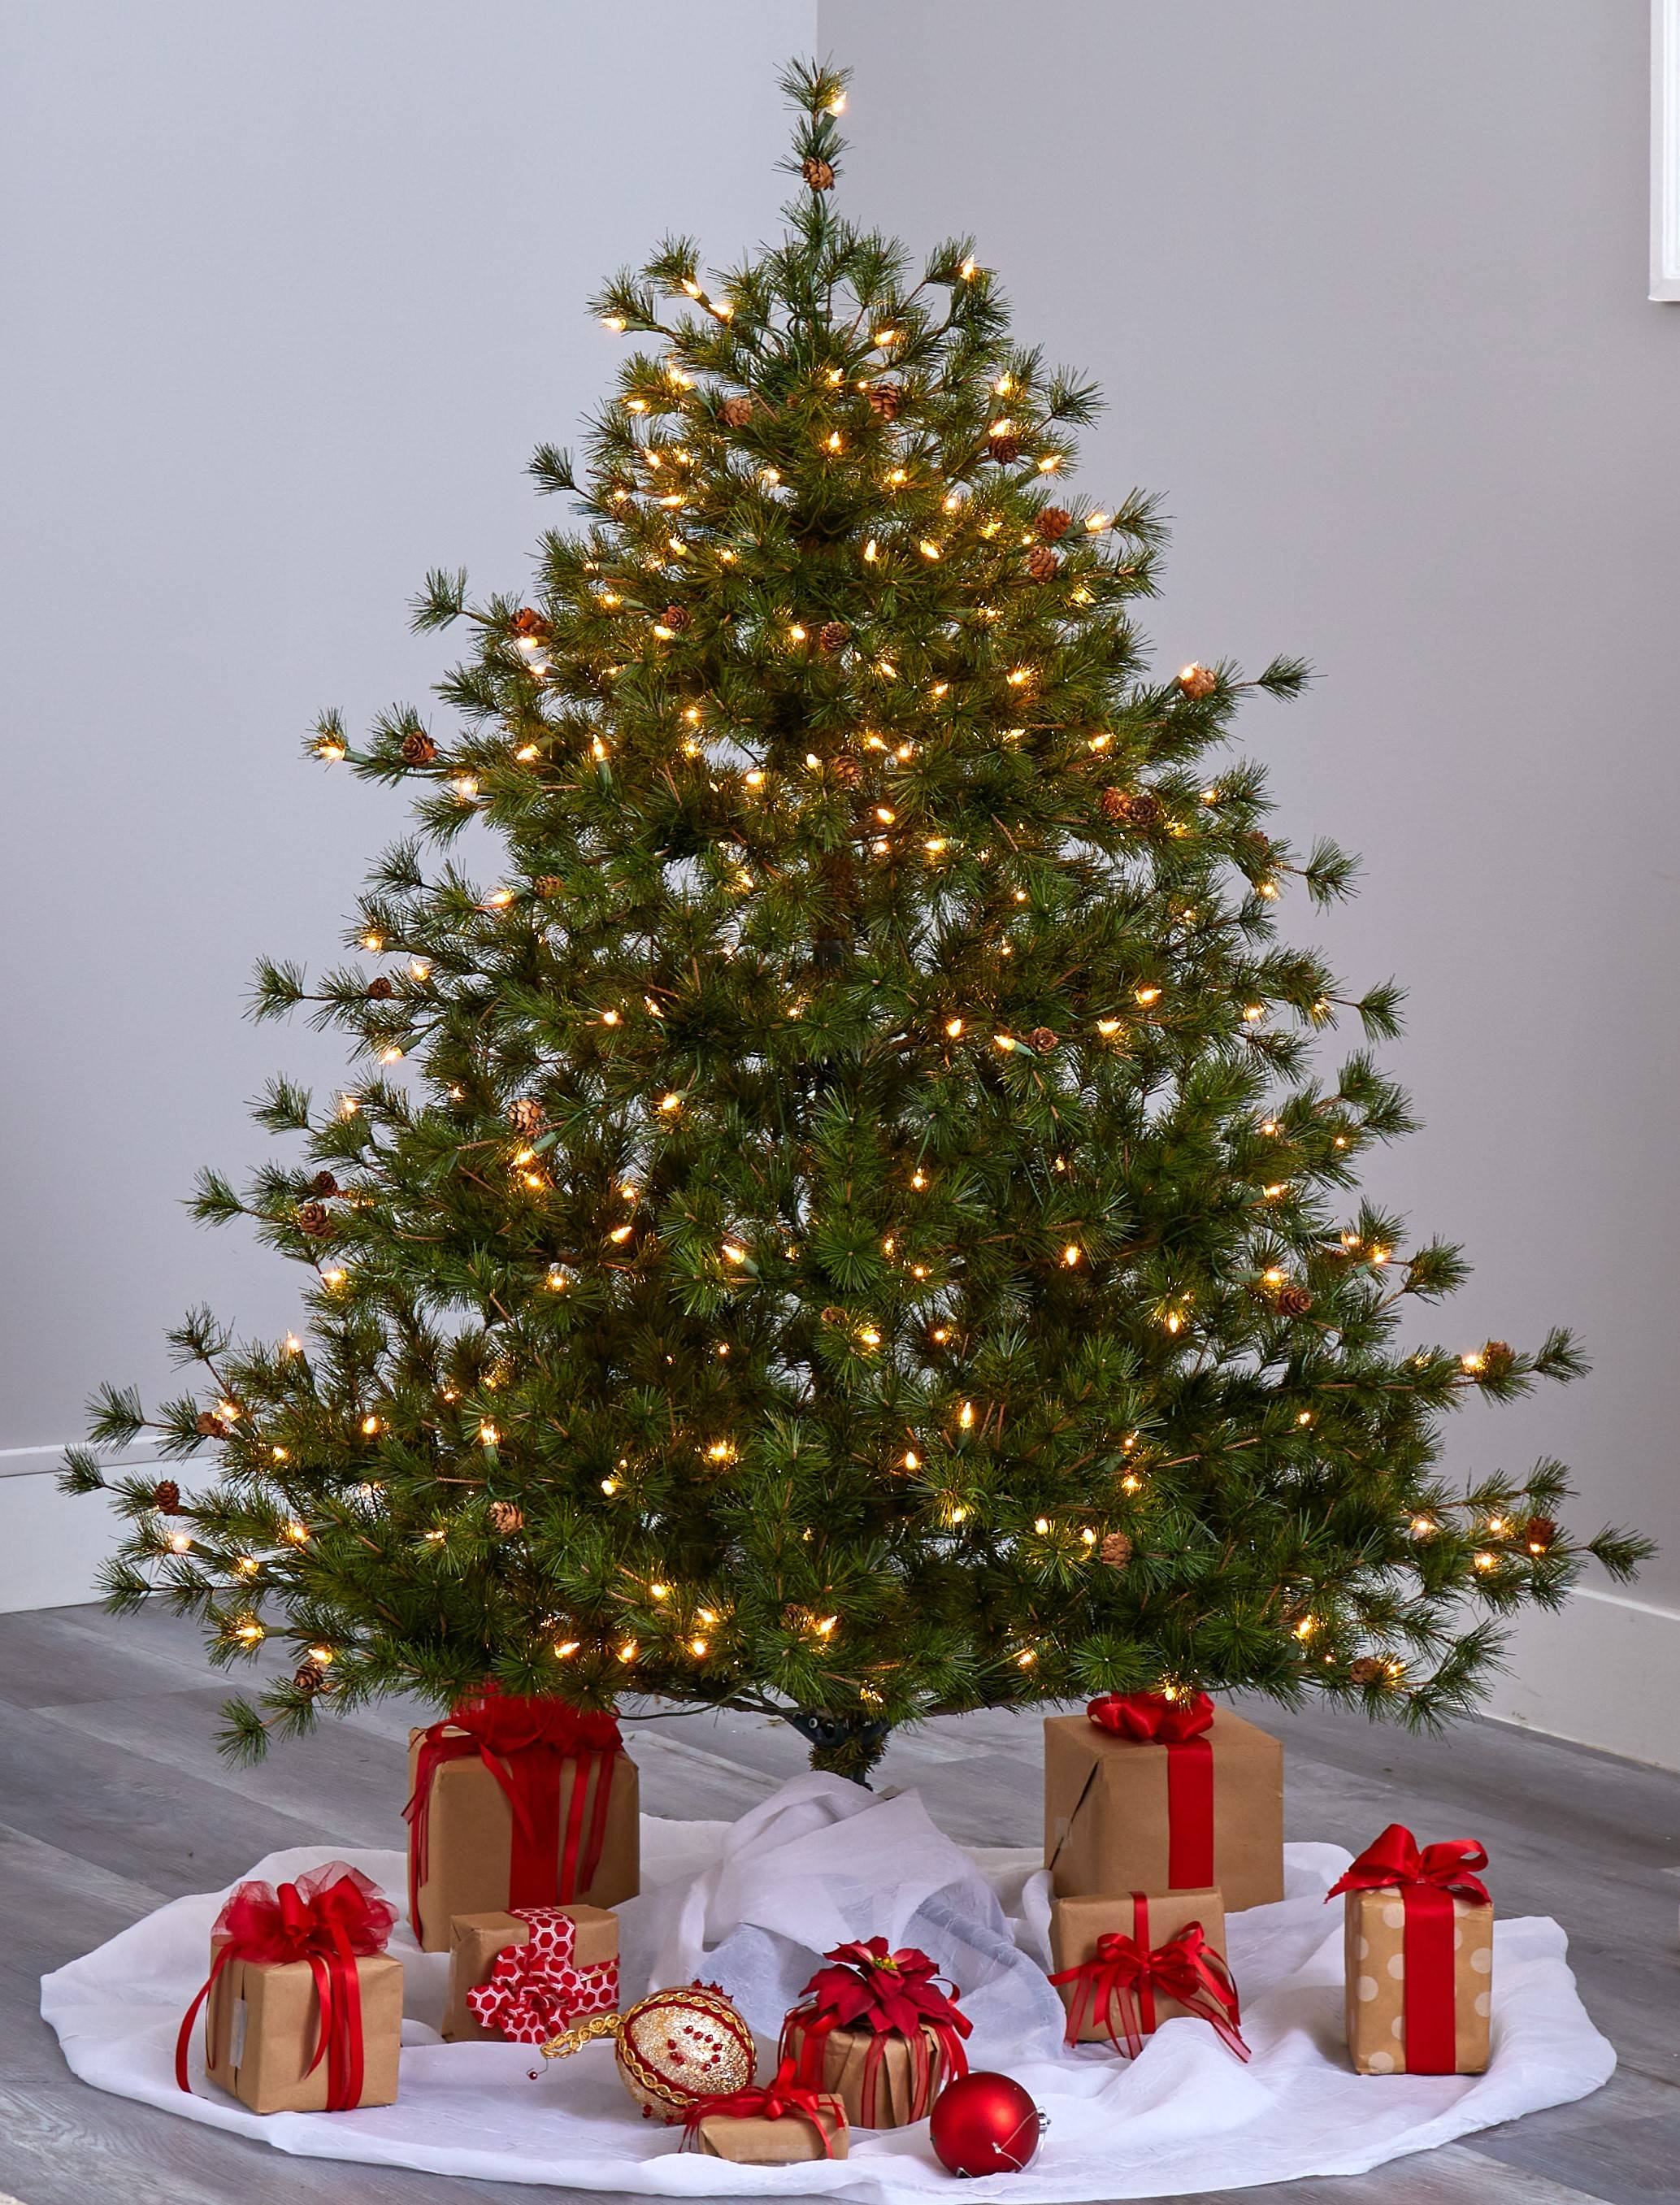 A Christmas tree with Christmas and holiday gifts under the tree